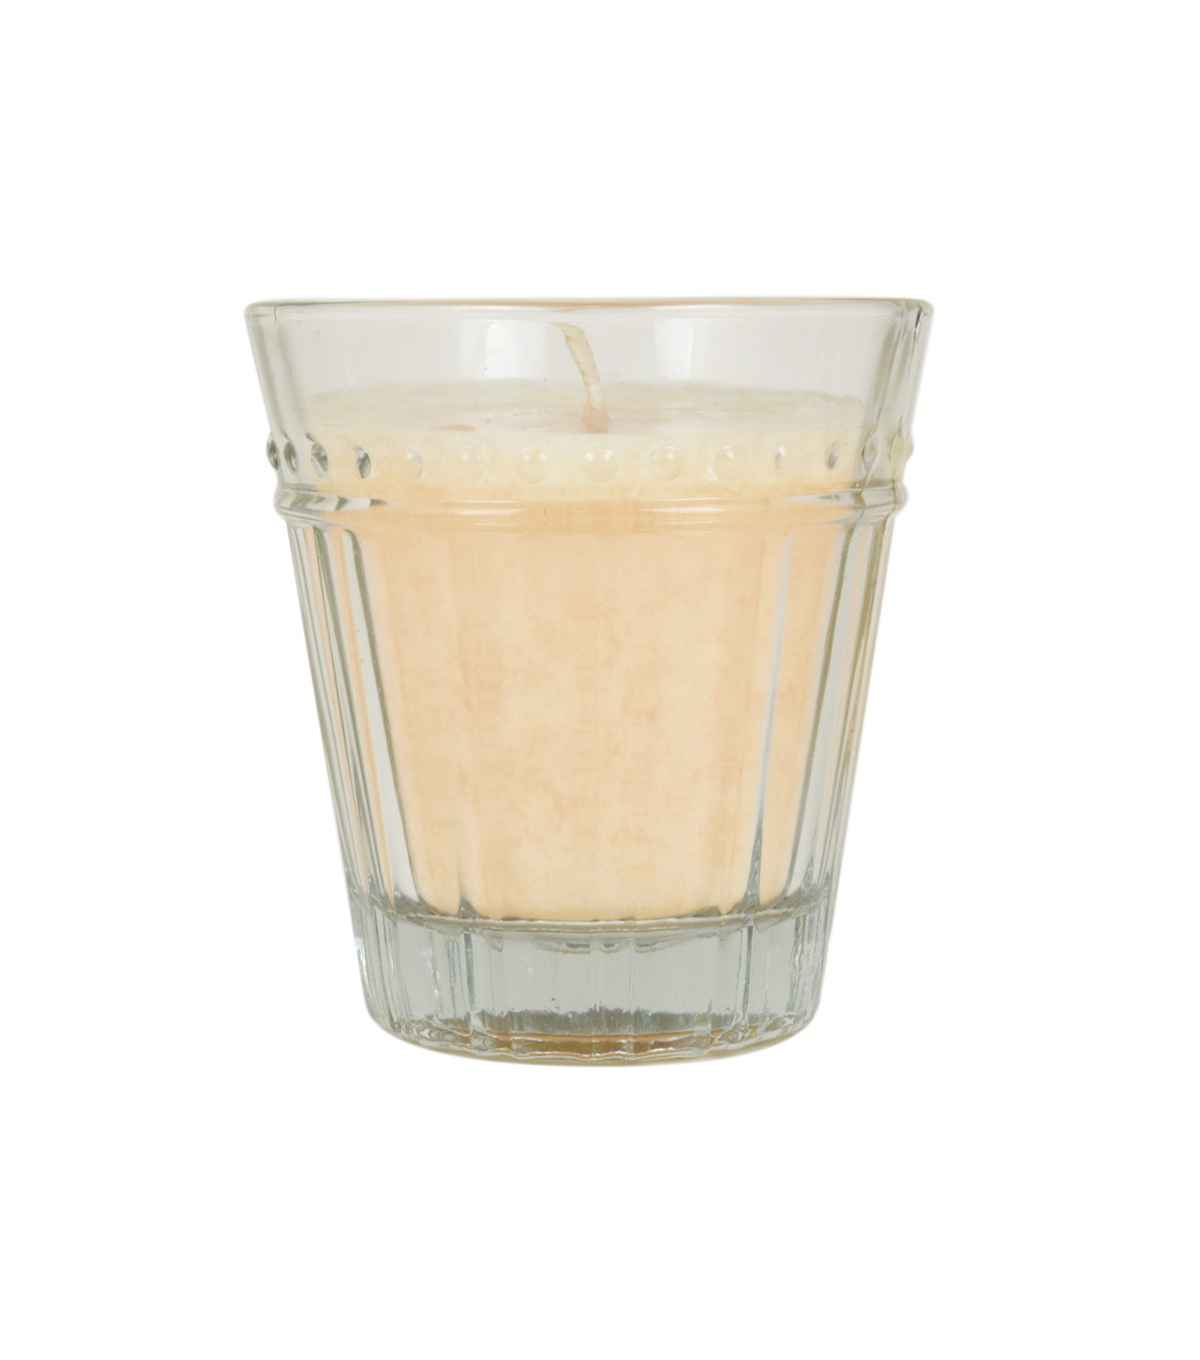 Hudson 43™ Candle & Light Collection 7oz Clear Glass Vanilla Cinnamon Fill